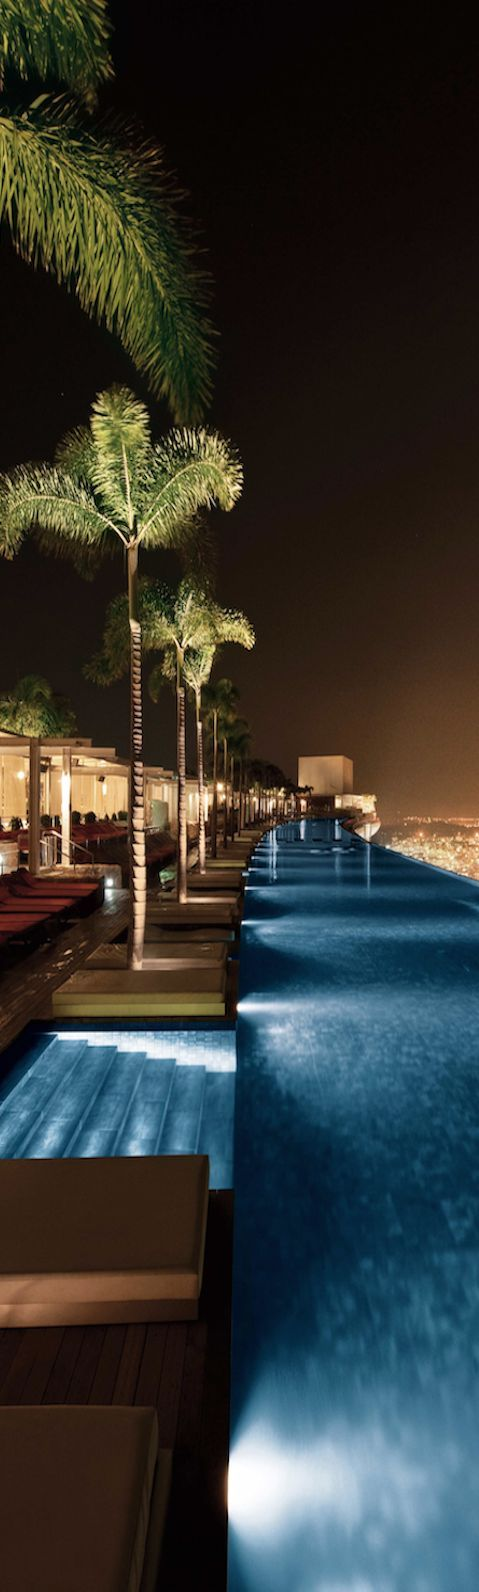 Rooftop Pool, Marina Bay Sands Resort, Singapore - The Most Amazing Pools all Over the World, The Infinity pool at Marina Bay Sands resort in Singapore